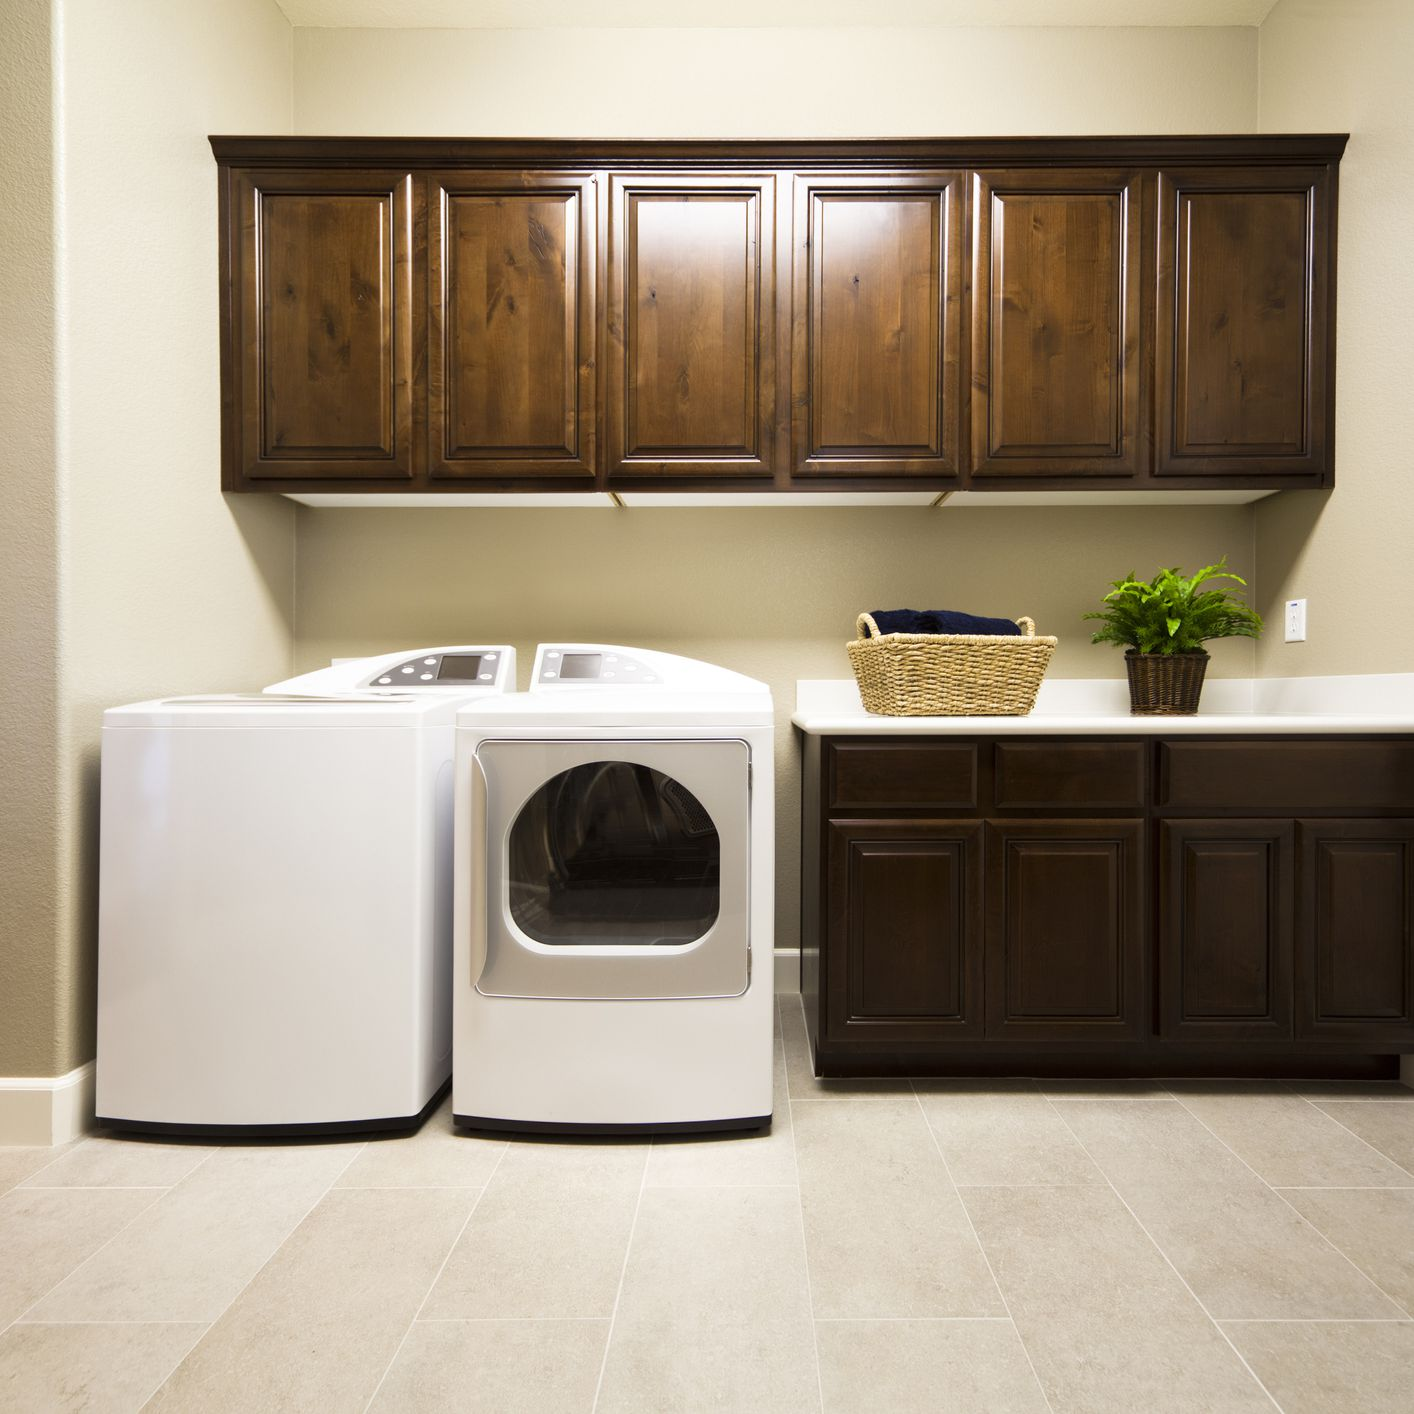 4 Laundry Room Cabinet Options